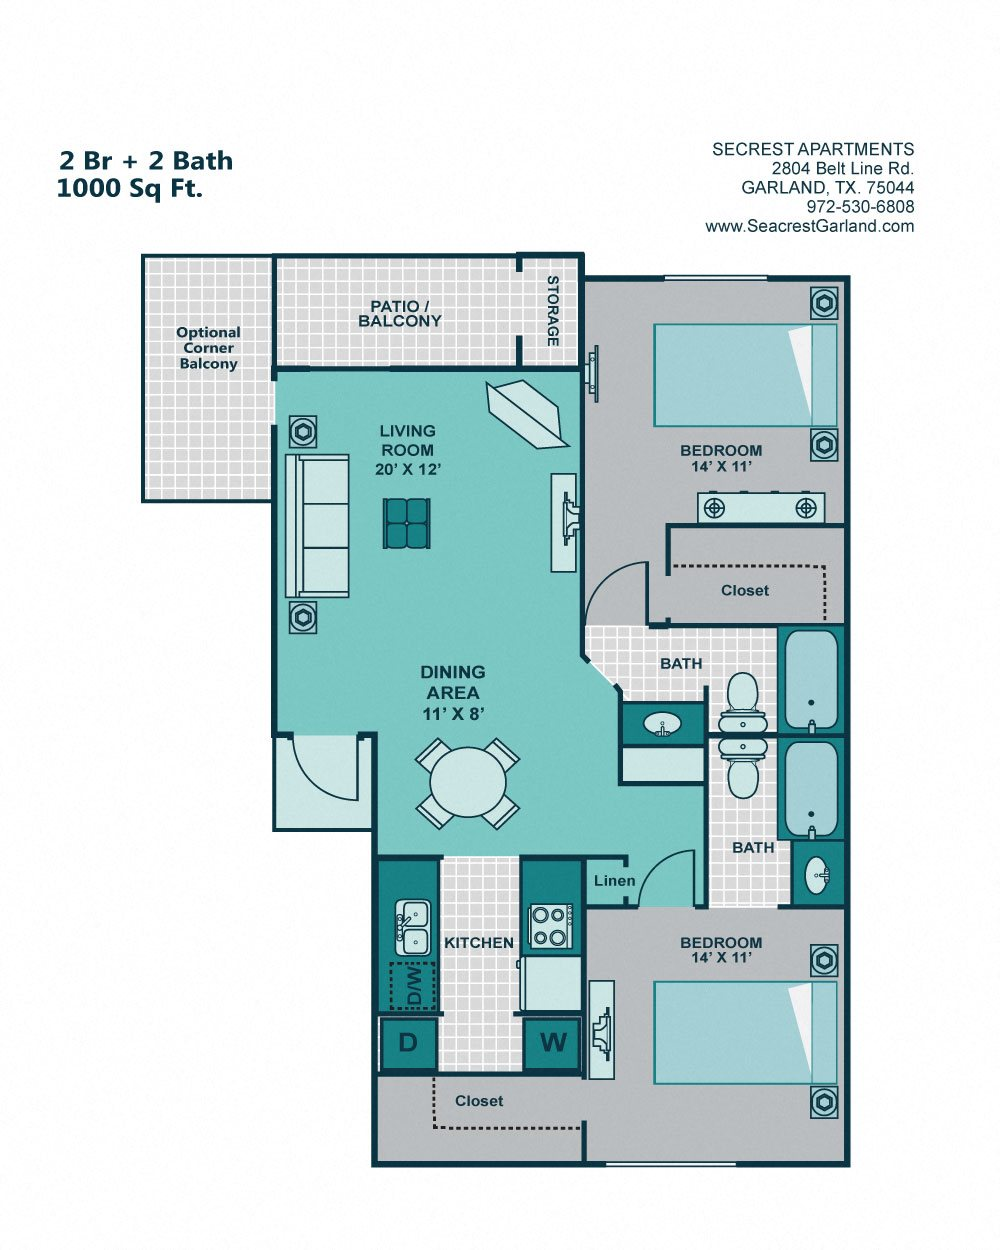 Floor Plans Of Seacrest Apartments In Garland, TX